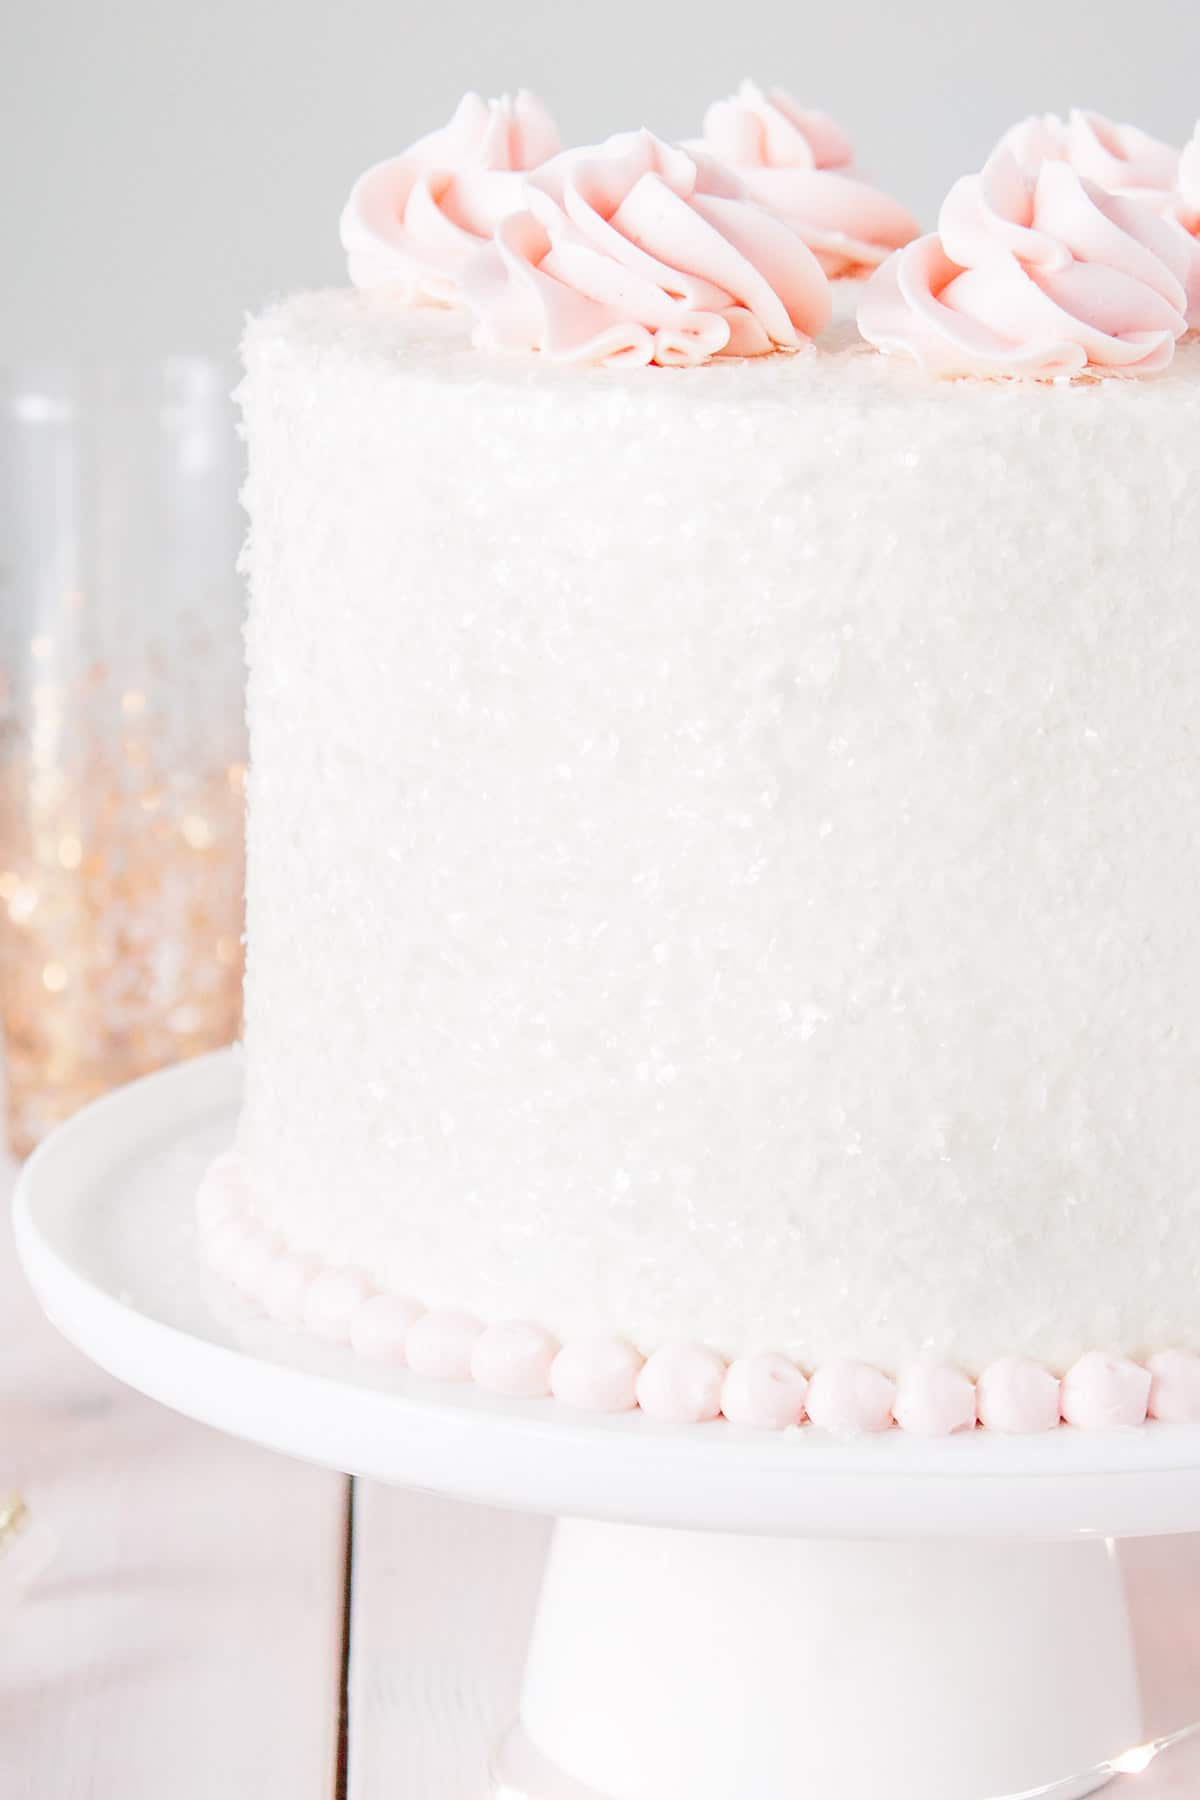 Close up of cake sparkles on a pink champagne cake.